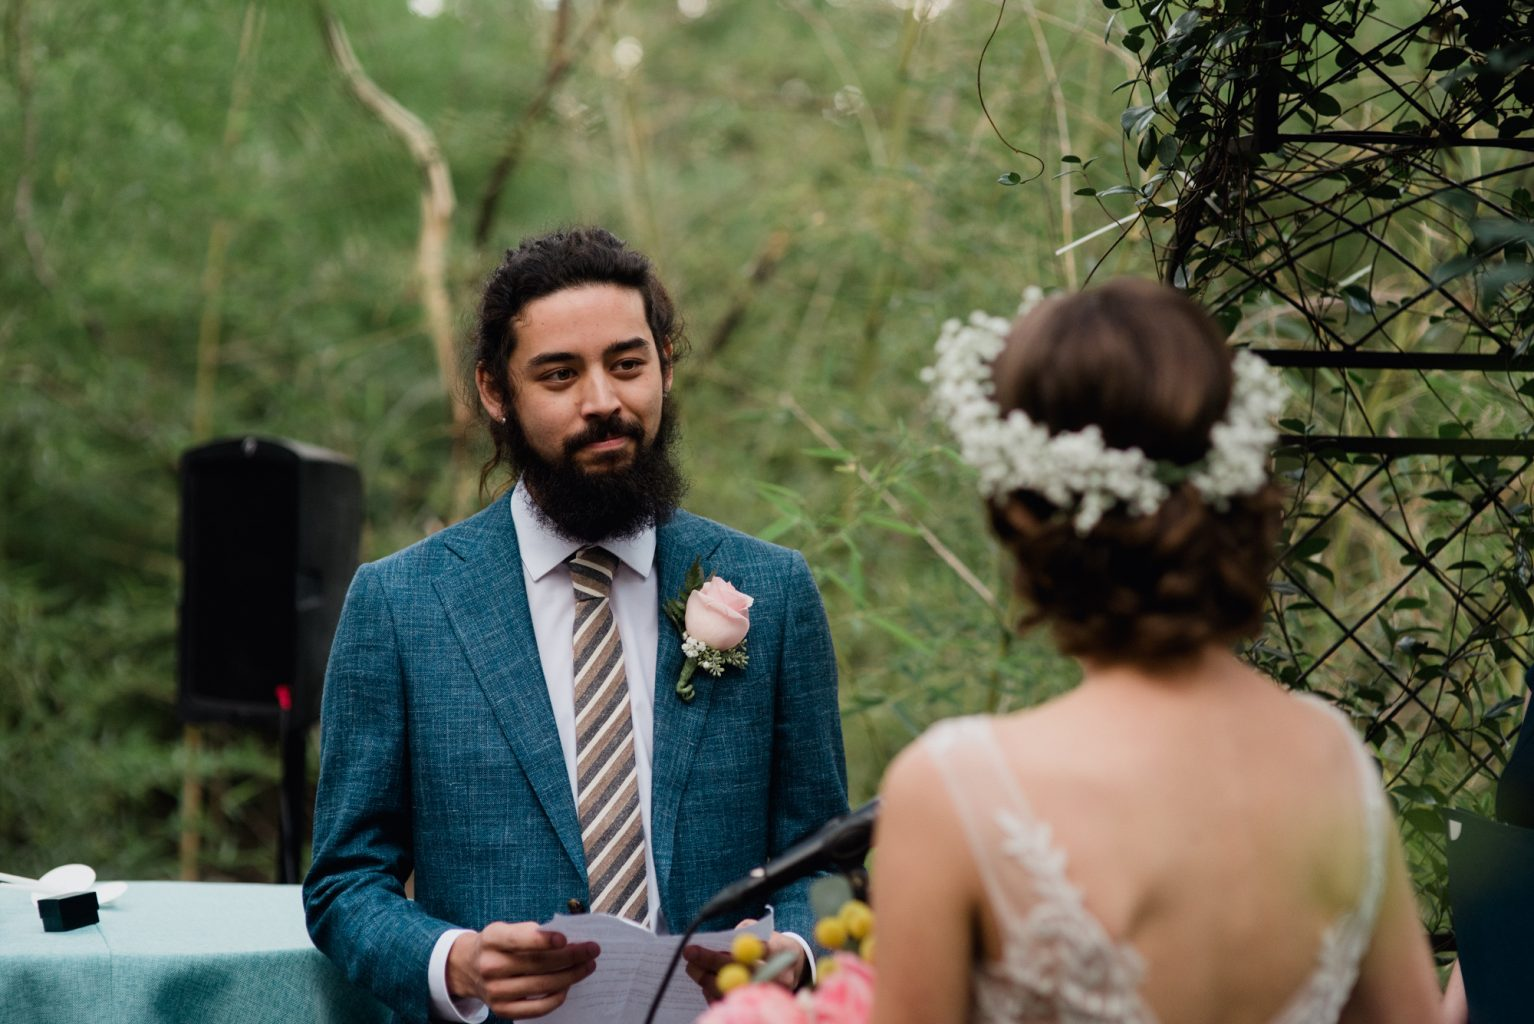 Our groom reads emotional vows during his backyard wedding in Austin Texas